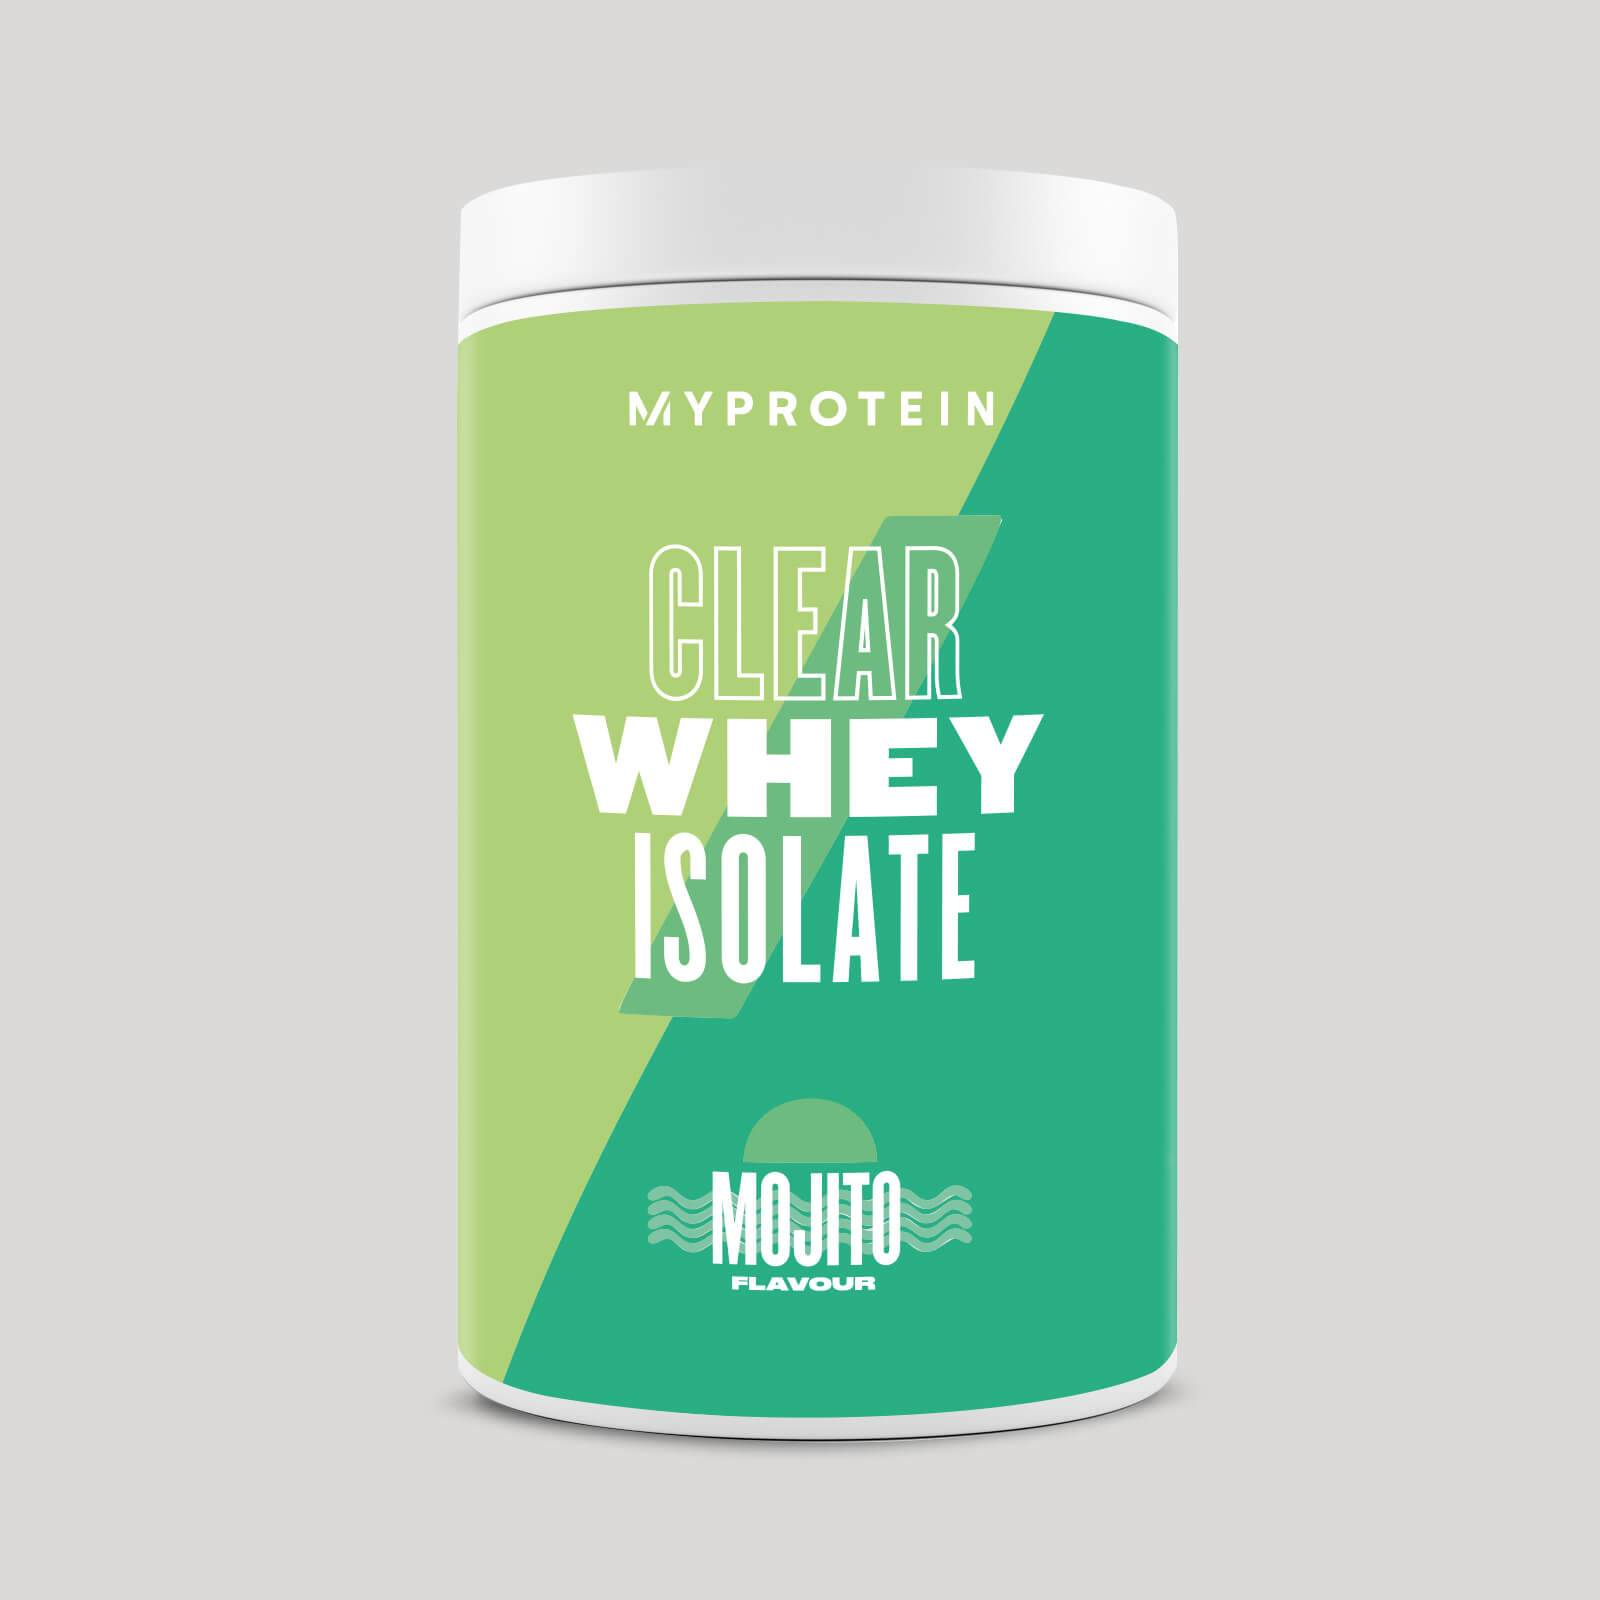 Myprotein Clear Whey Isolate - 20servings - Mojito